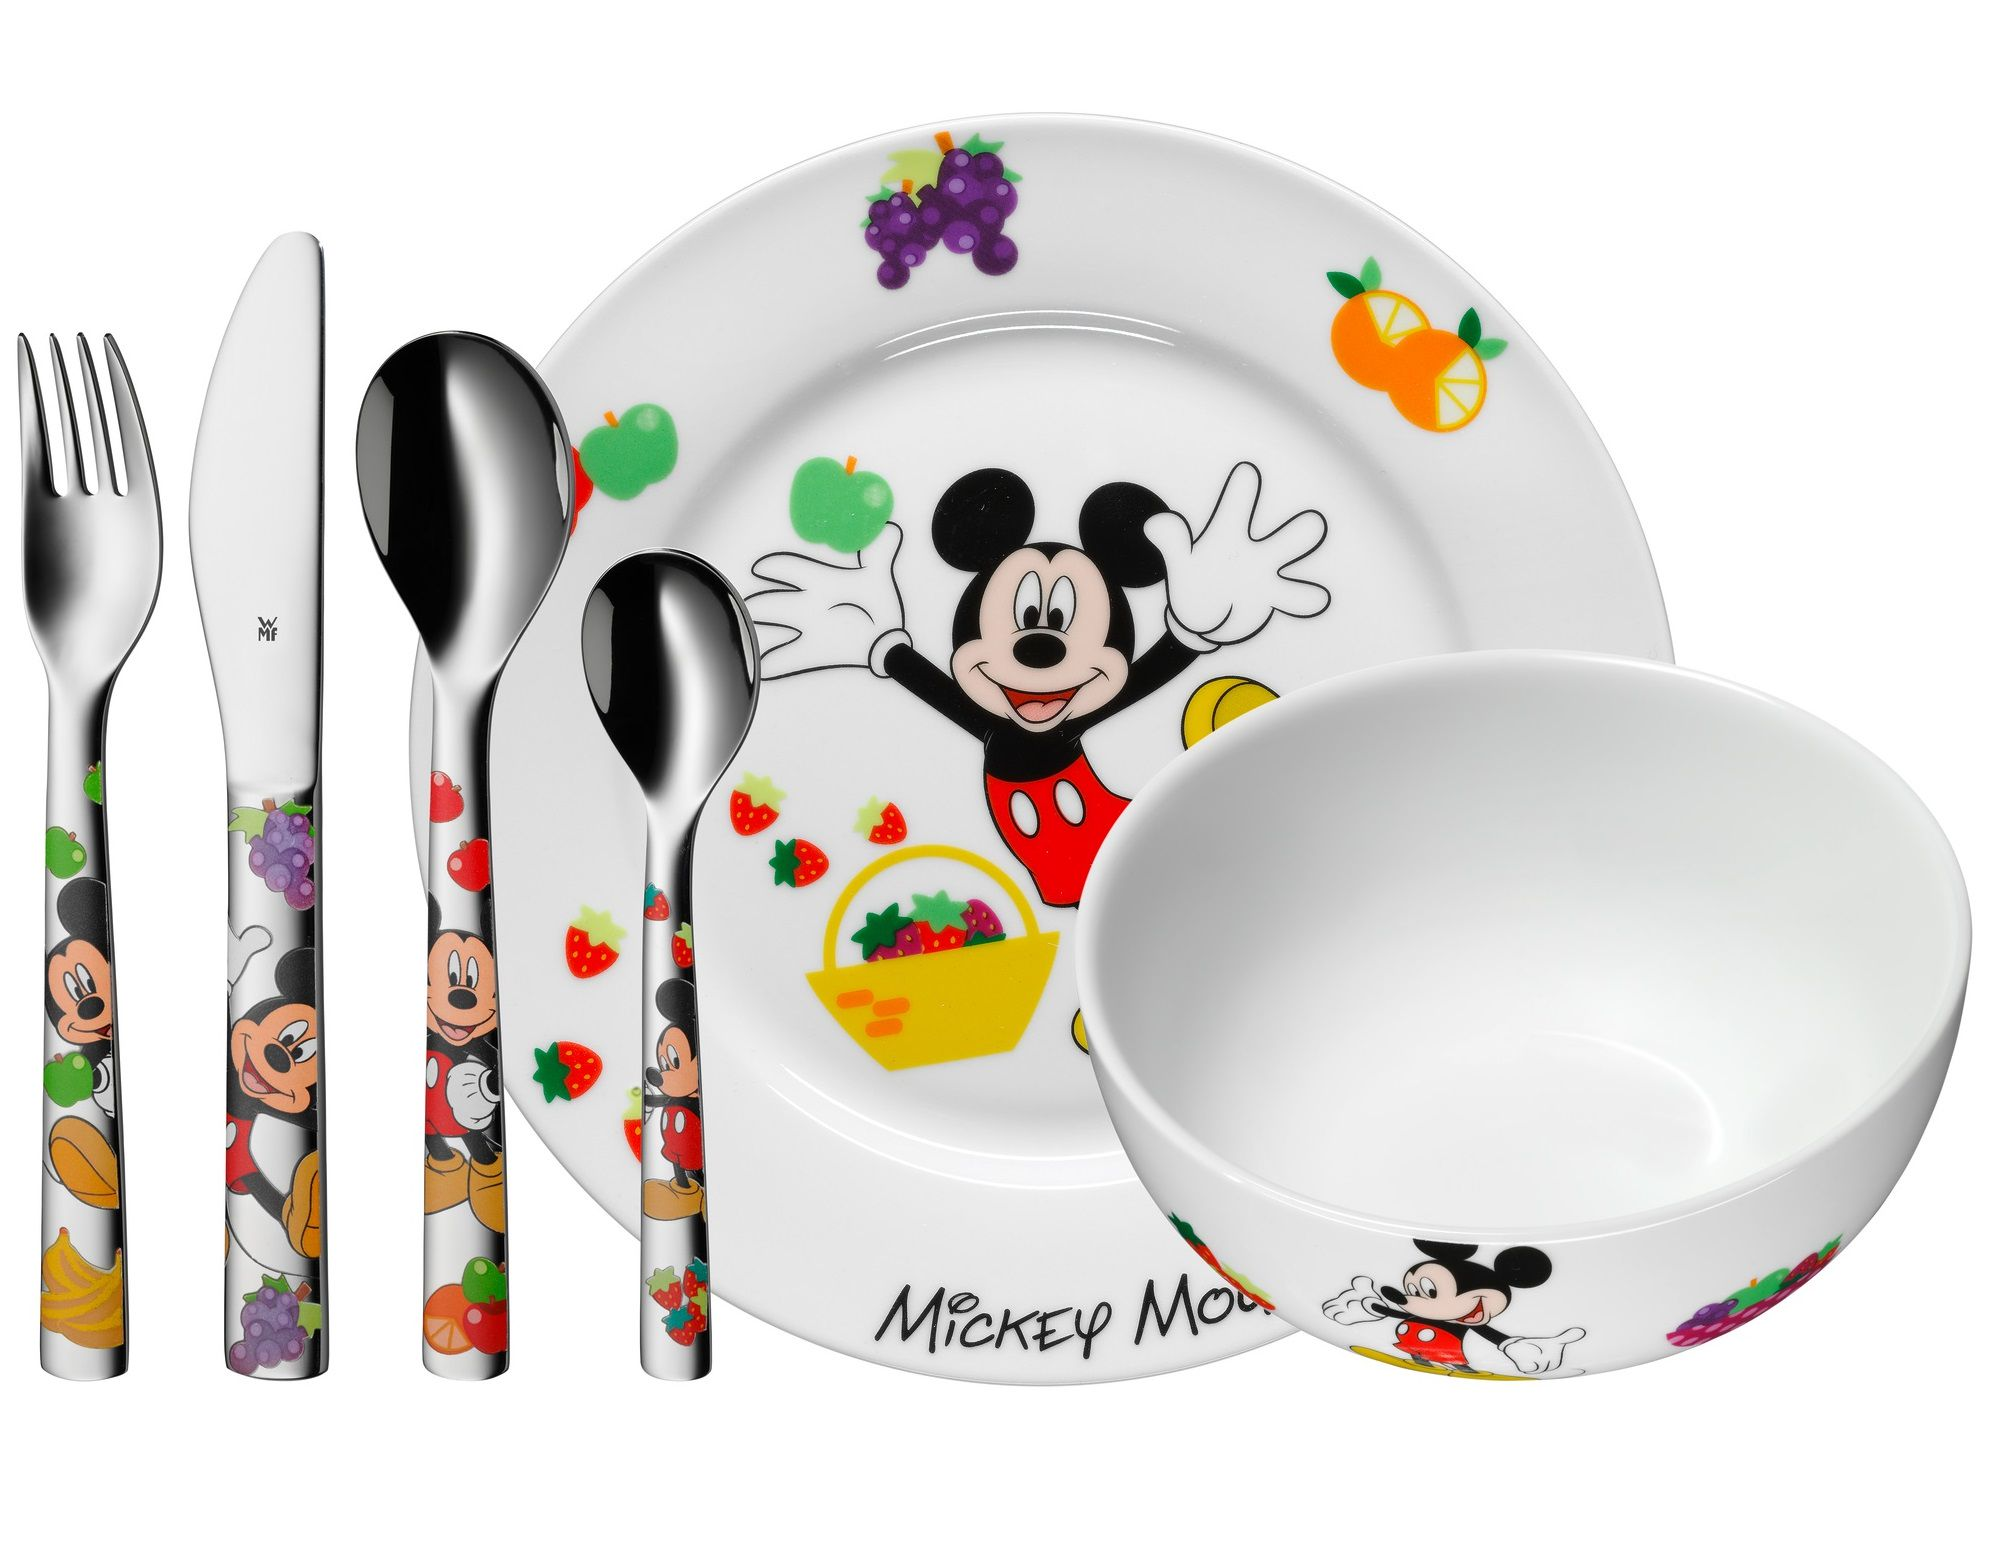 WMF Kids Disney Mickey Mouse kinderservies 6-delig